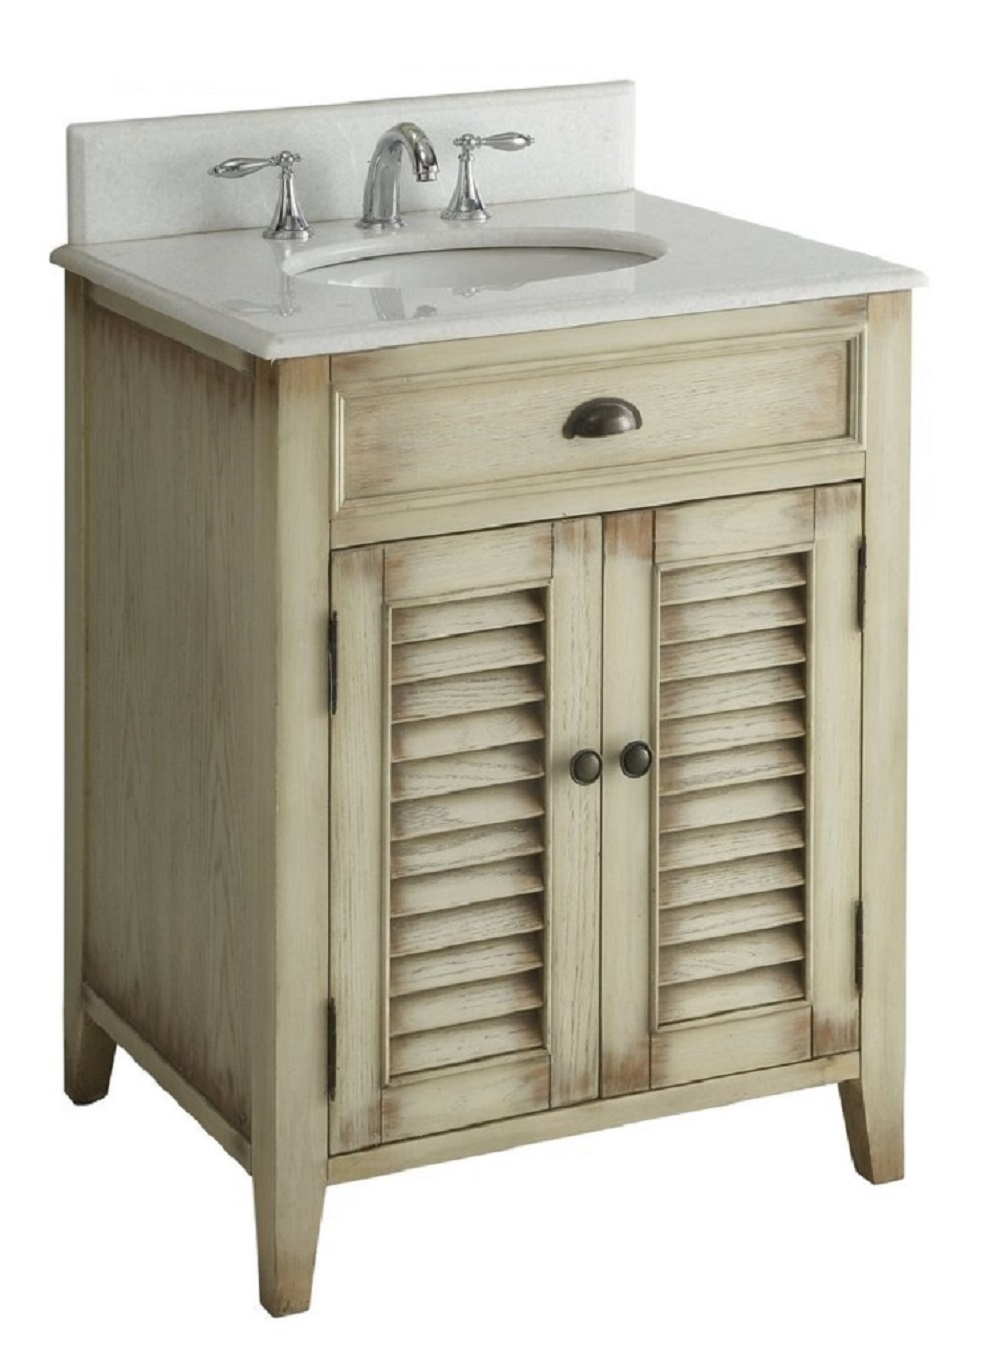 34 Inch Bathroom Vanity: 26 Inch Bathroom Vanity Vintage Casual Style Distressed